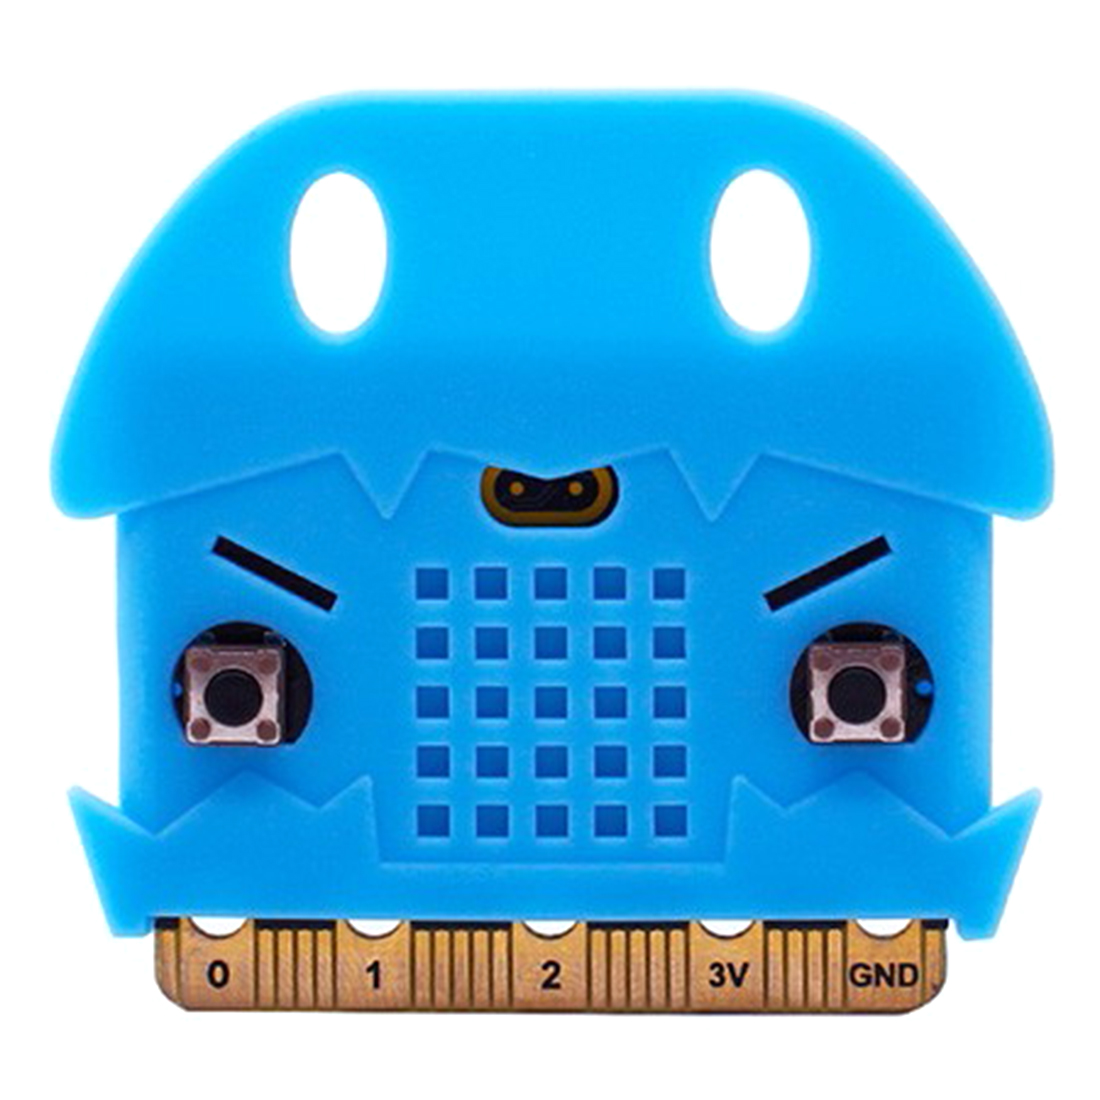 Protective Shell Silicone Protective Sleeve For Micro: Bit Development Board Educational Toy - Light Blue/Dark Red/Light Orange